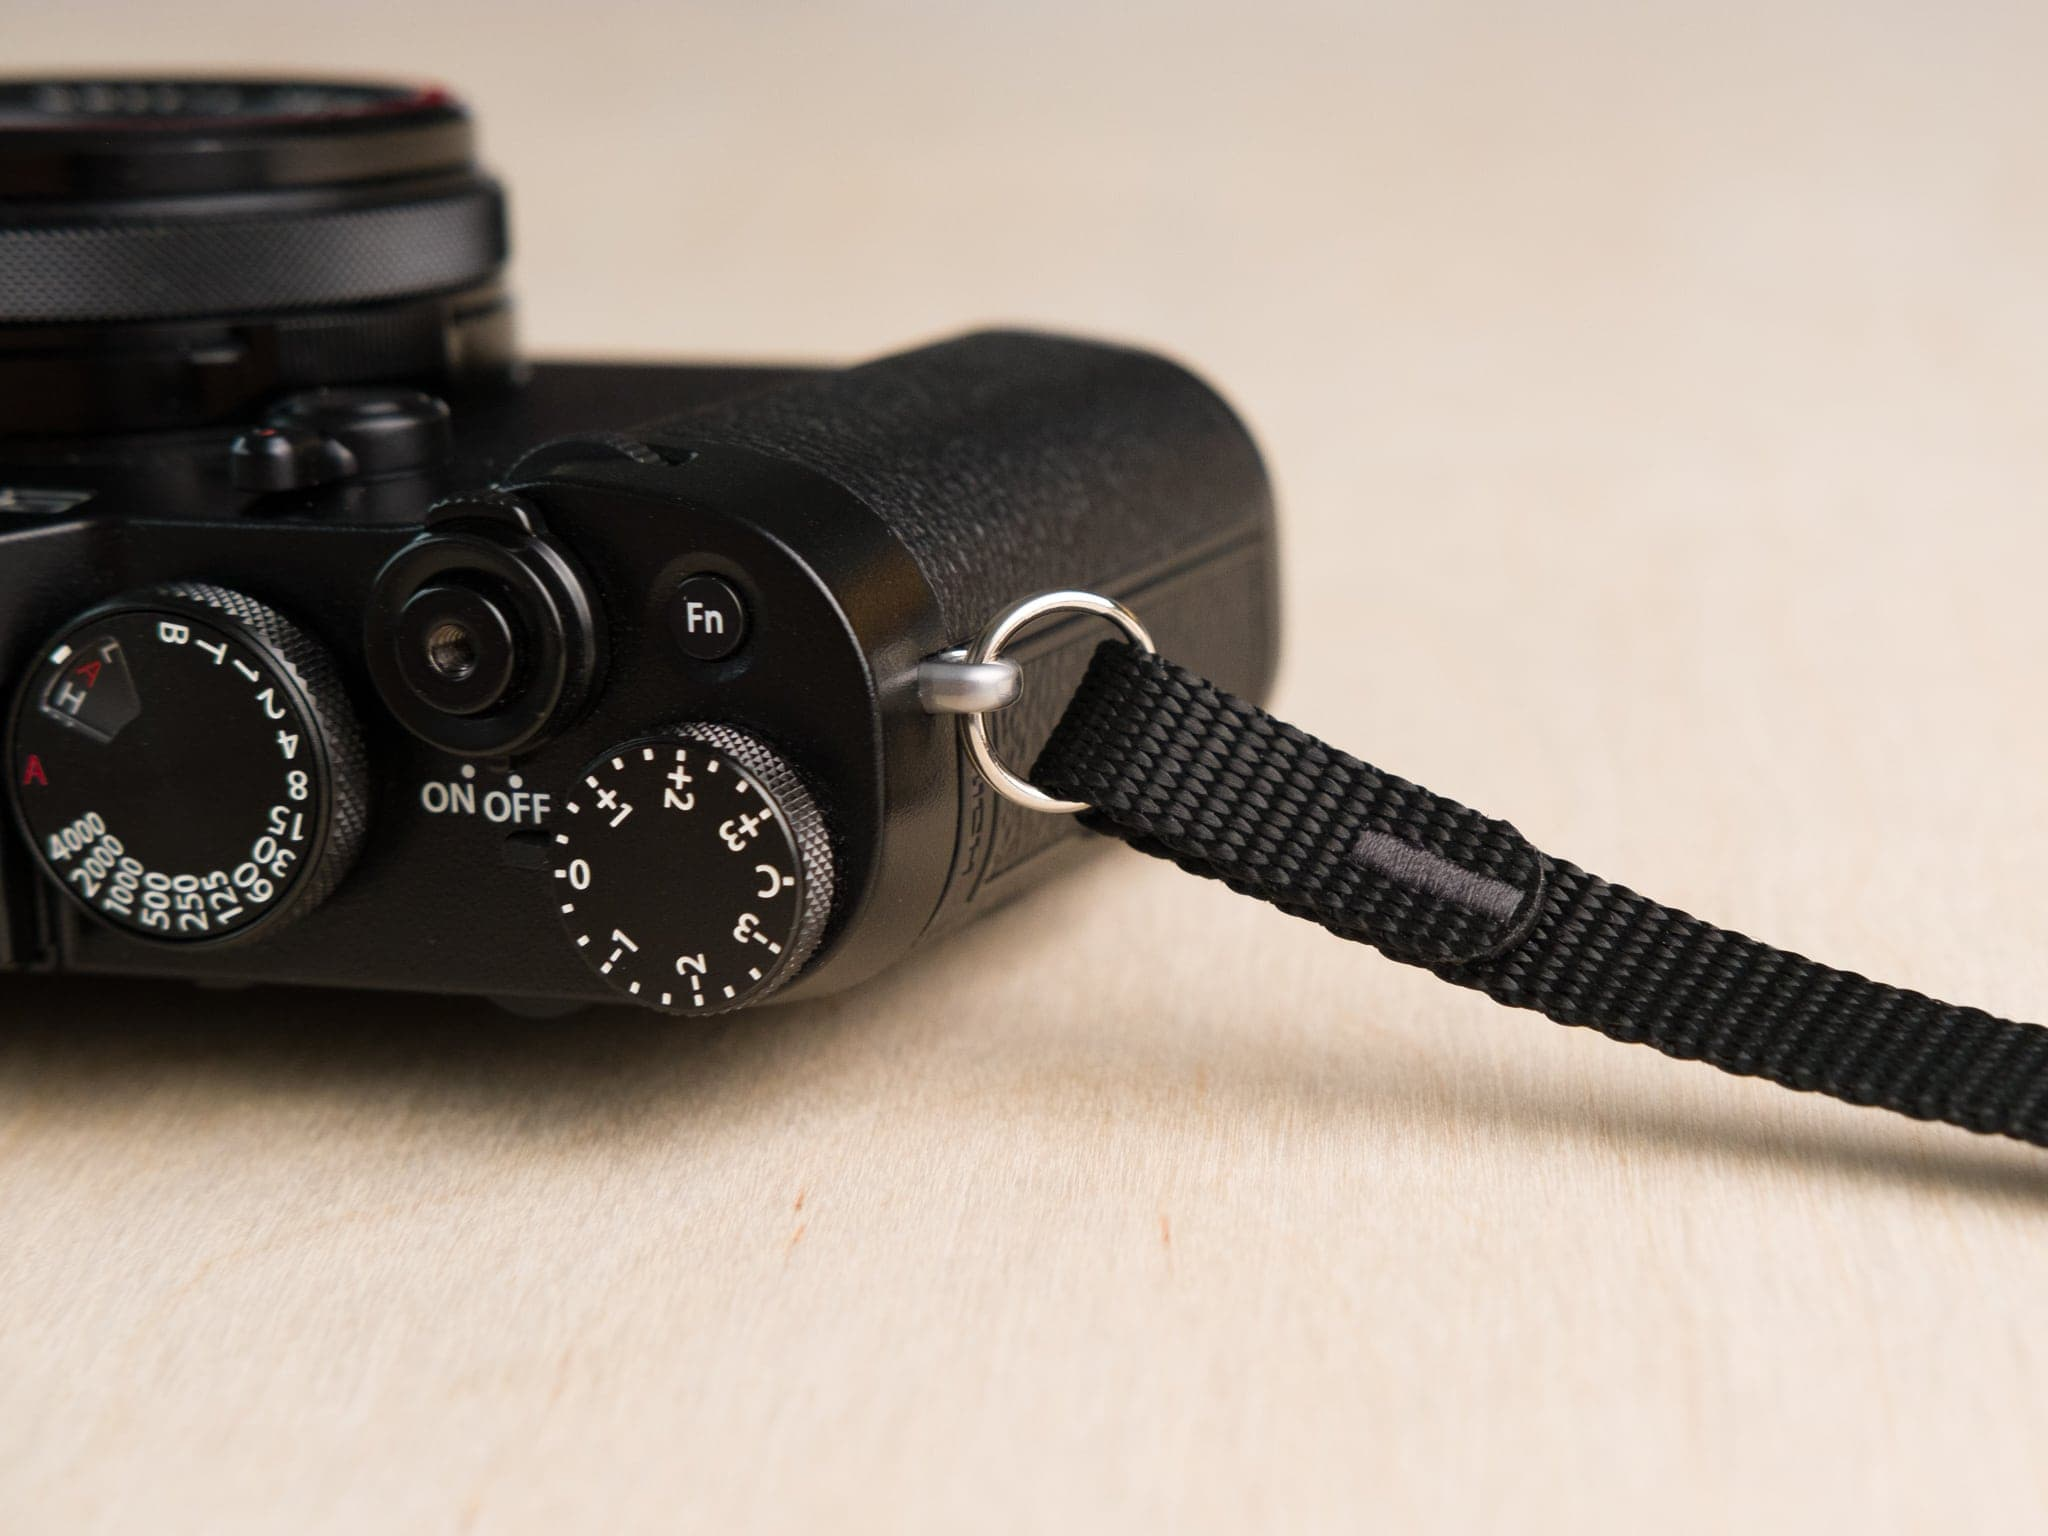 F1 camera strap detail